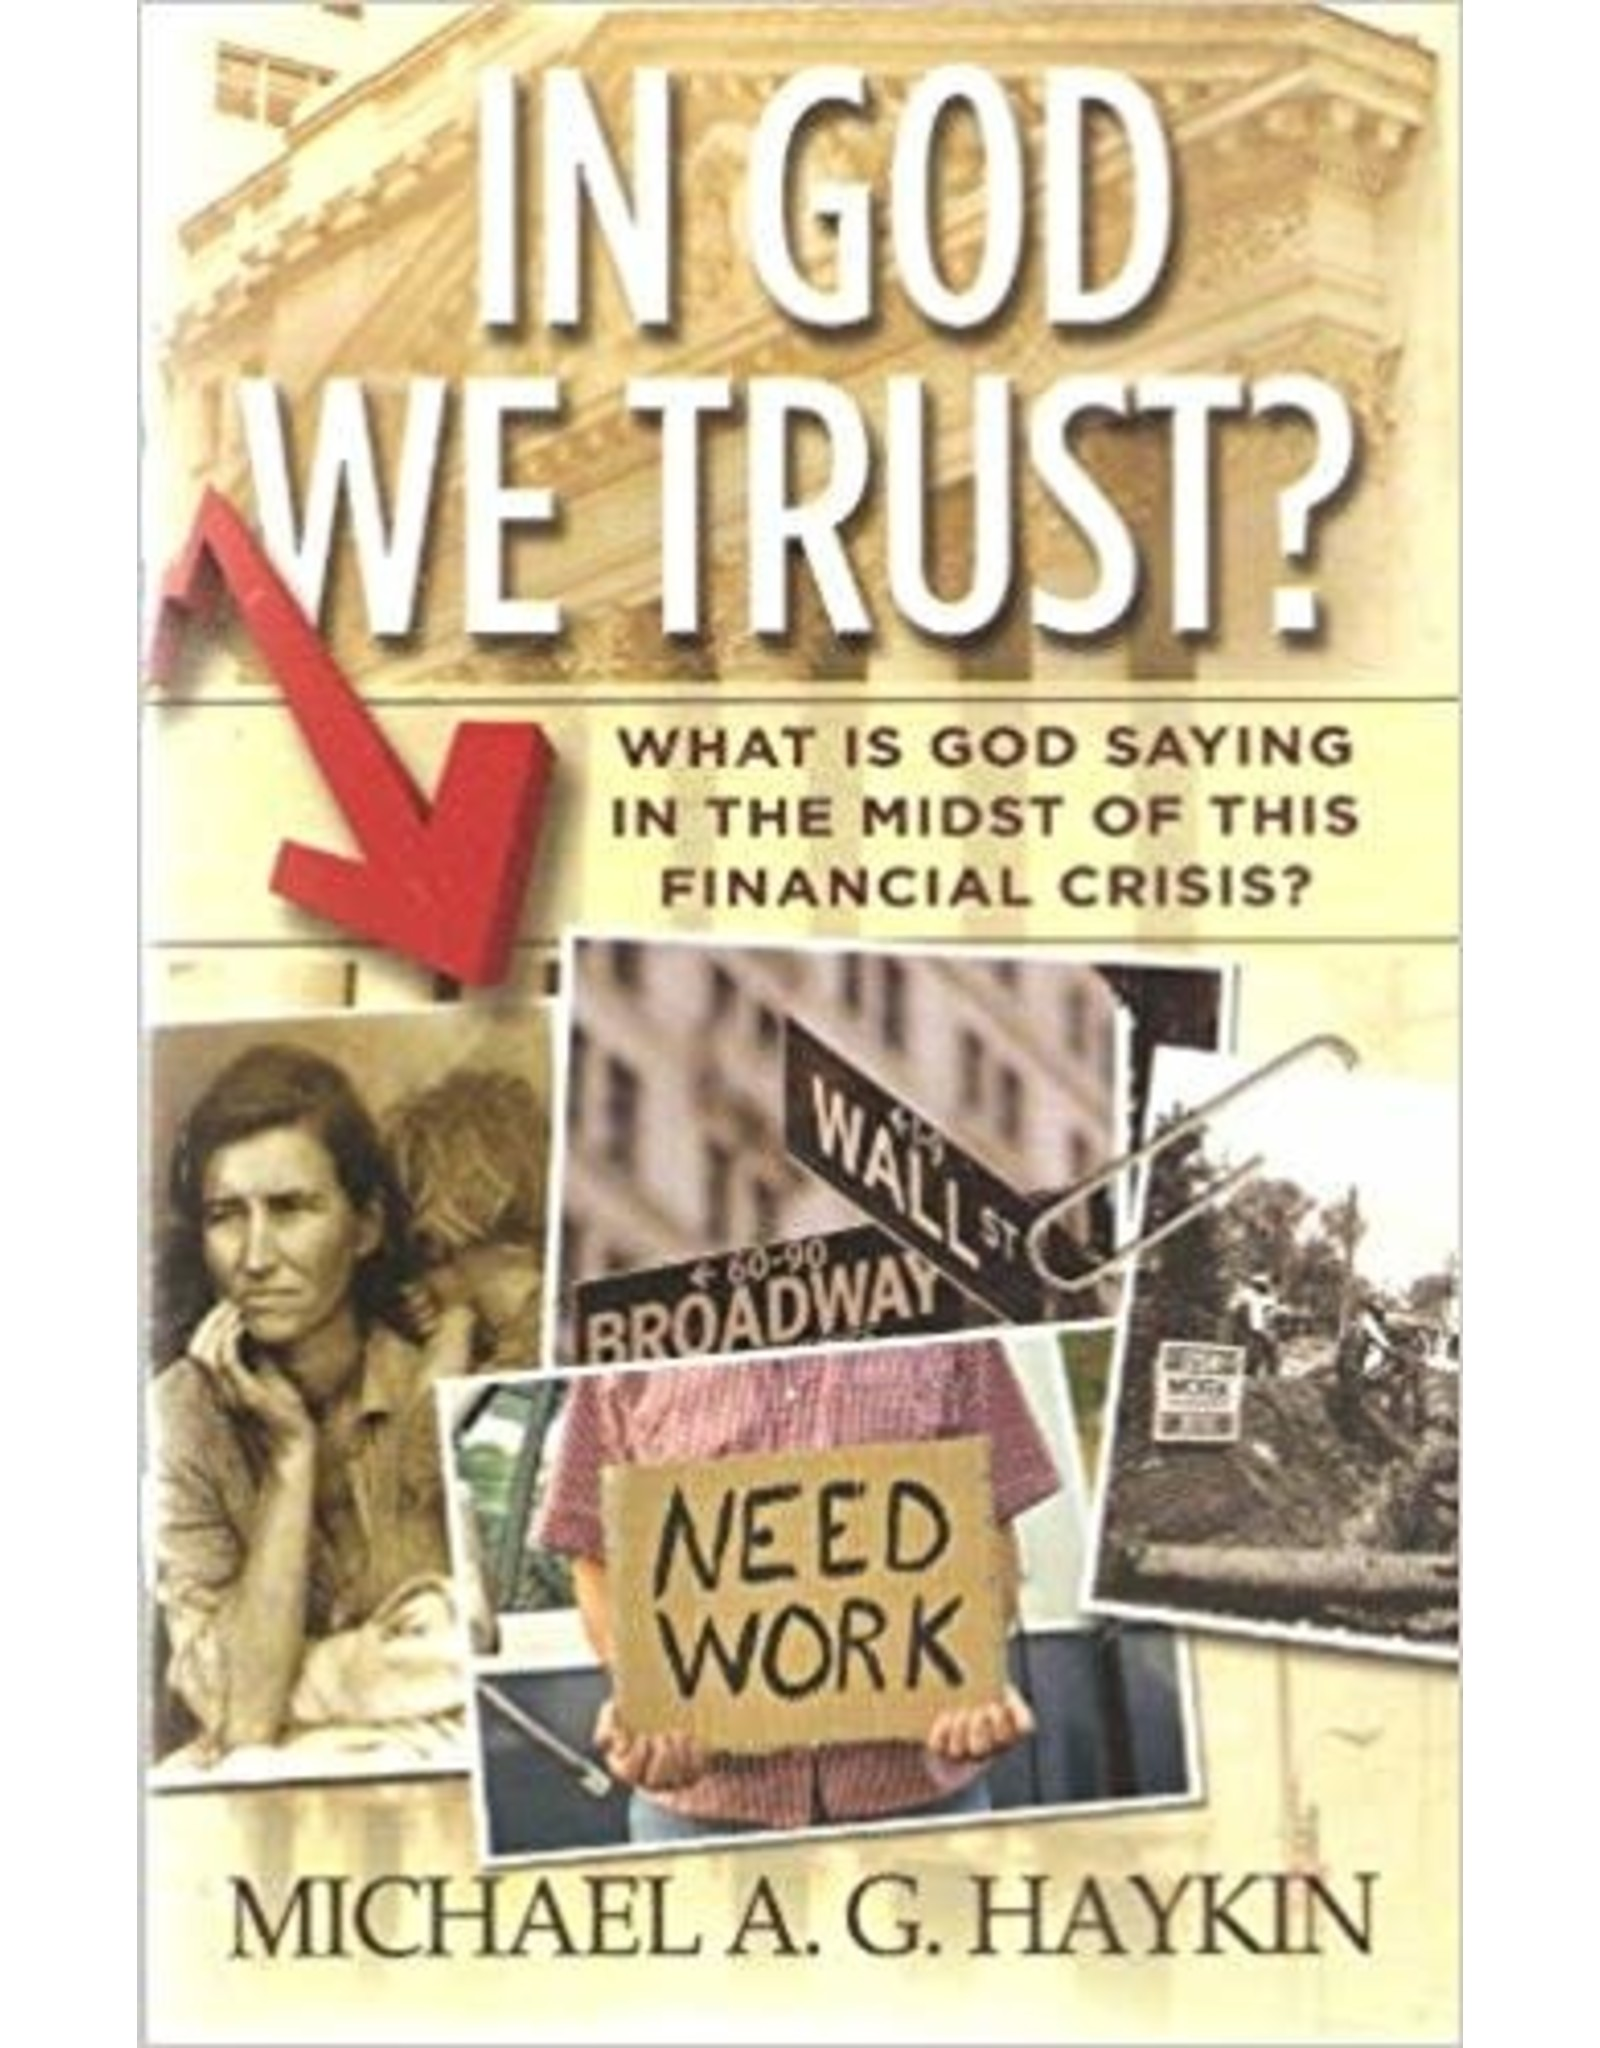 In God We Trust? What is God Saying in the Midst of this Financial Crisis?